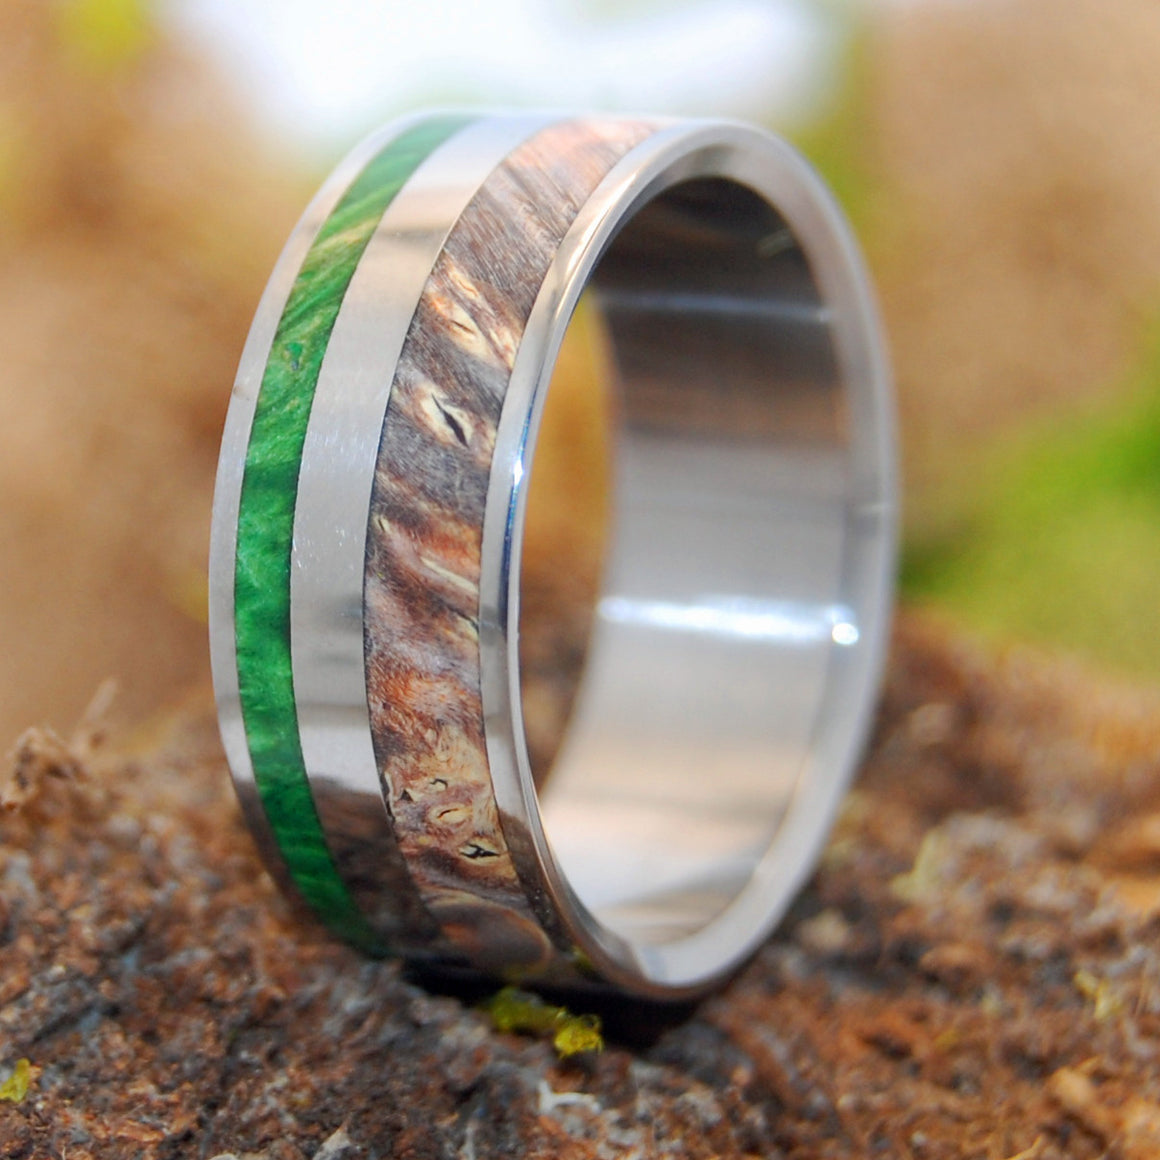 Spring Eternal | Wooden Wedding Band - Minter and Richter Designs